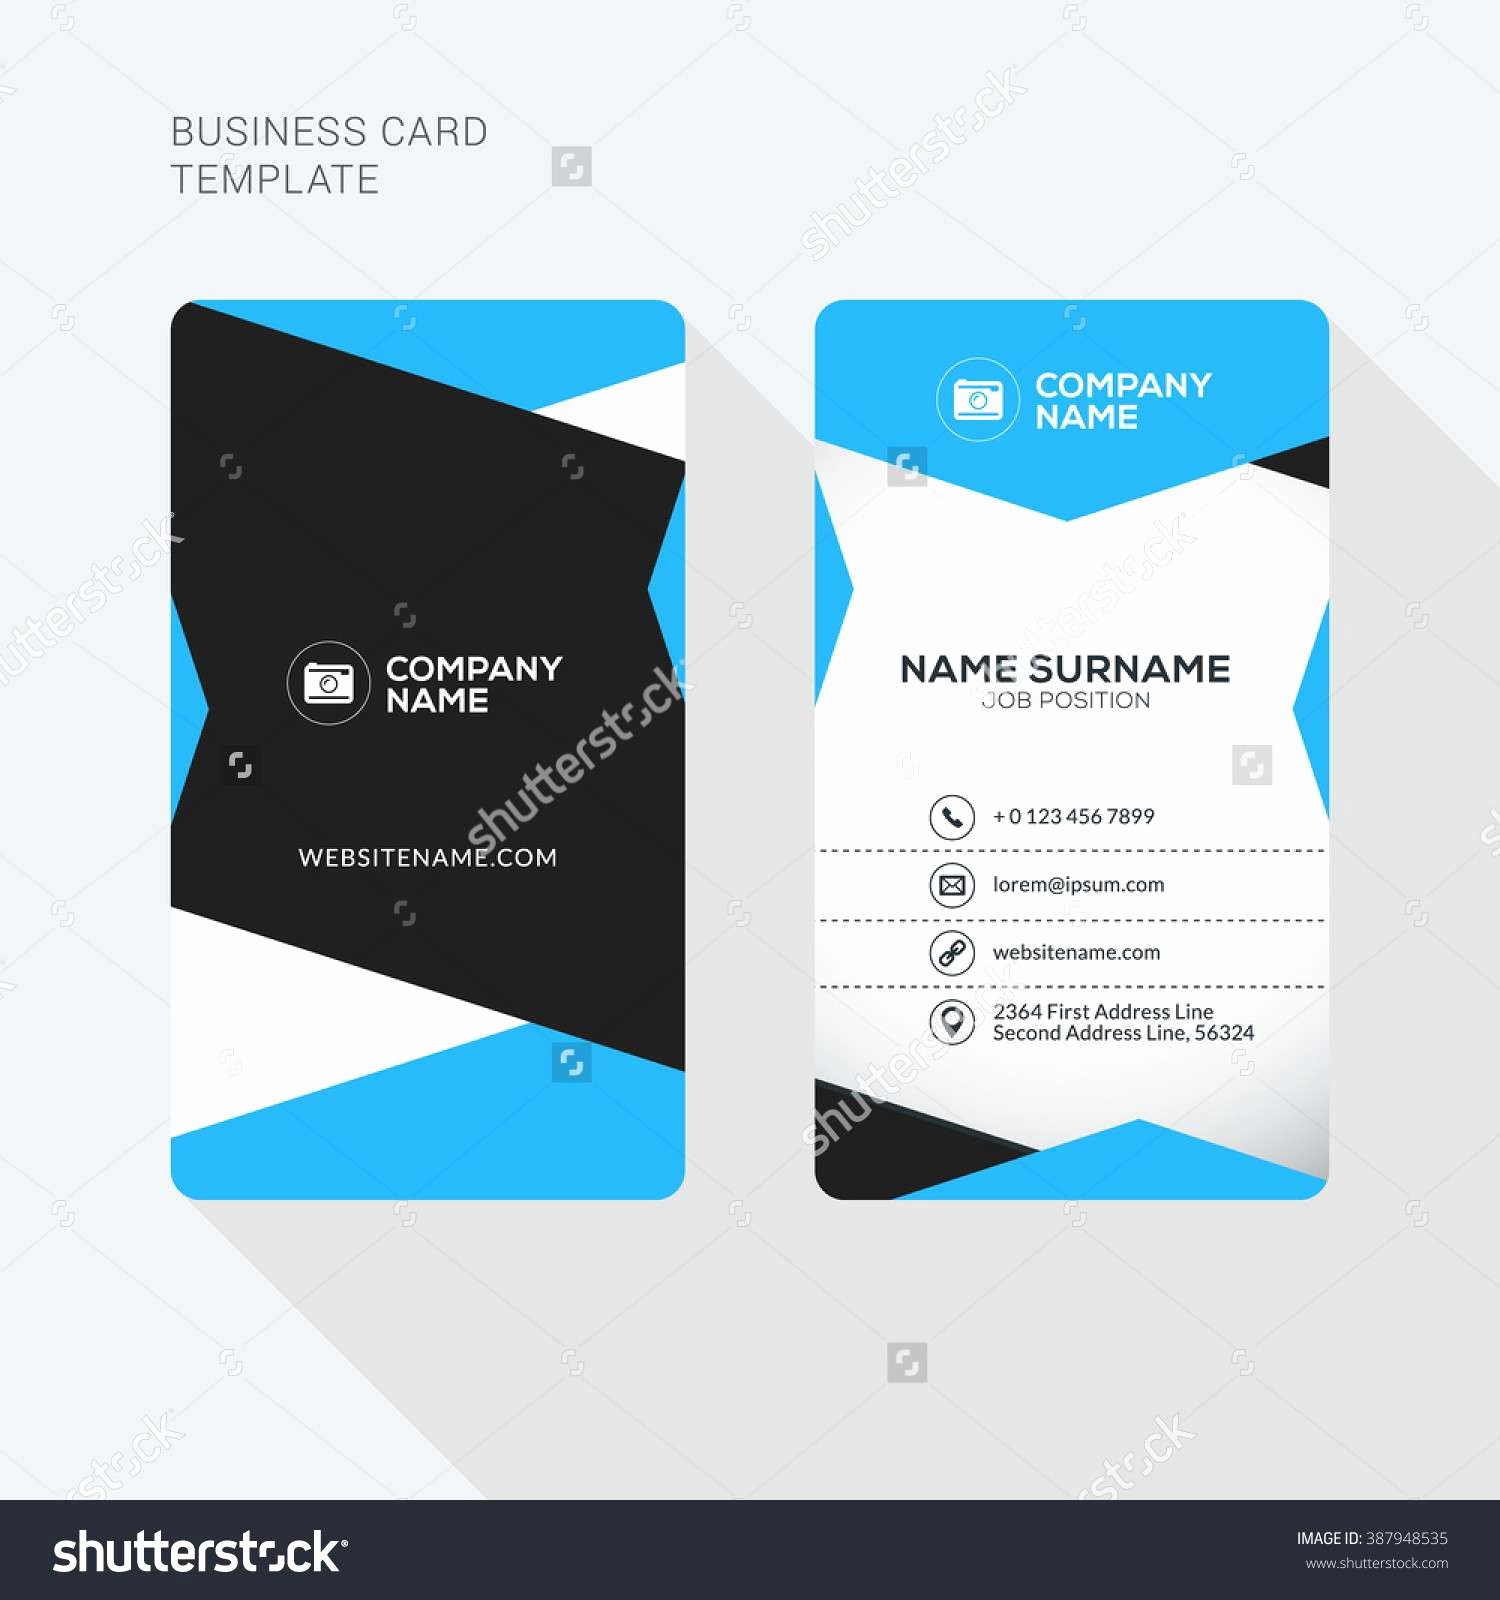 Two Sided Business Card Template Lovely 2 Sided Business Card Template Word Caquetapositivo